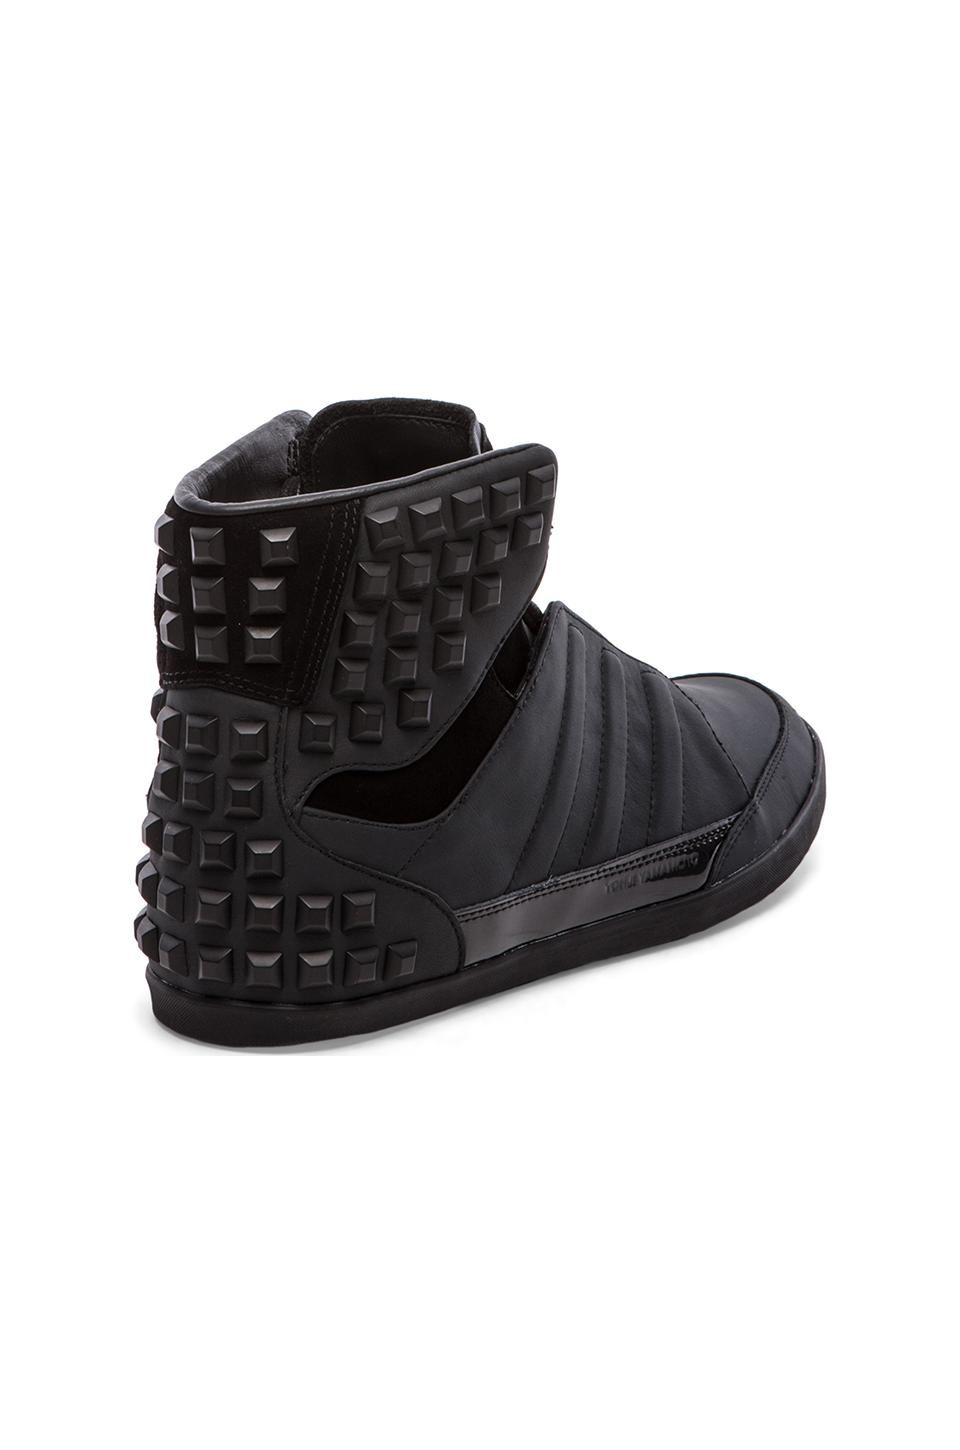 55acd4a40 adidas Y-3 Yohji Honja High  Black studded